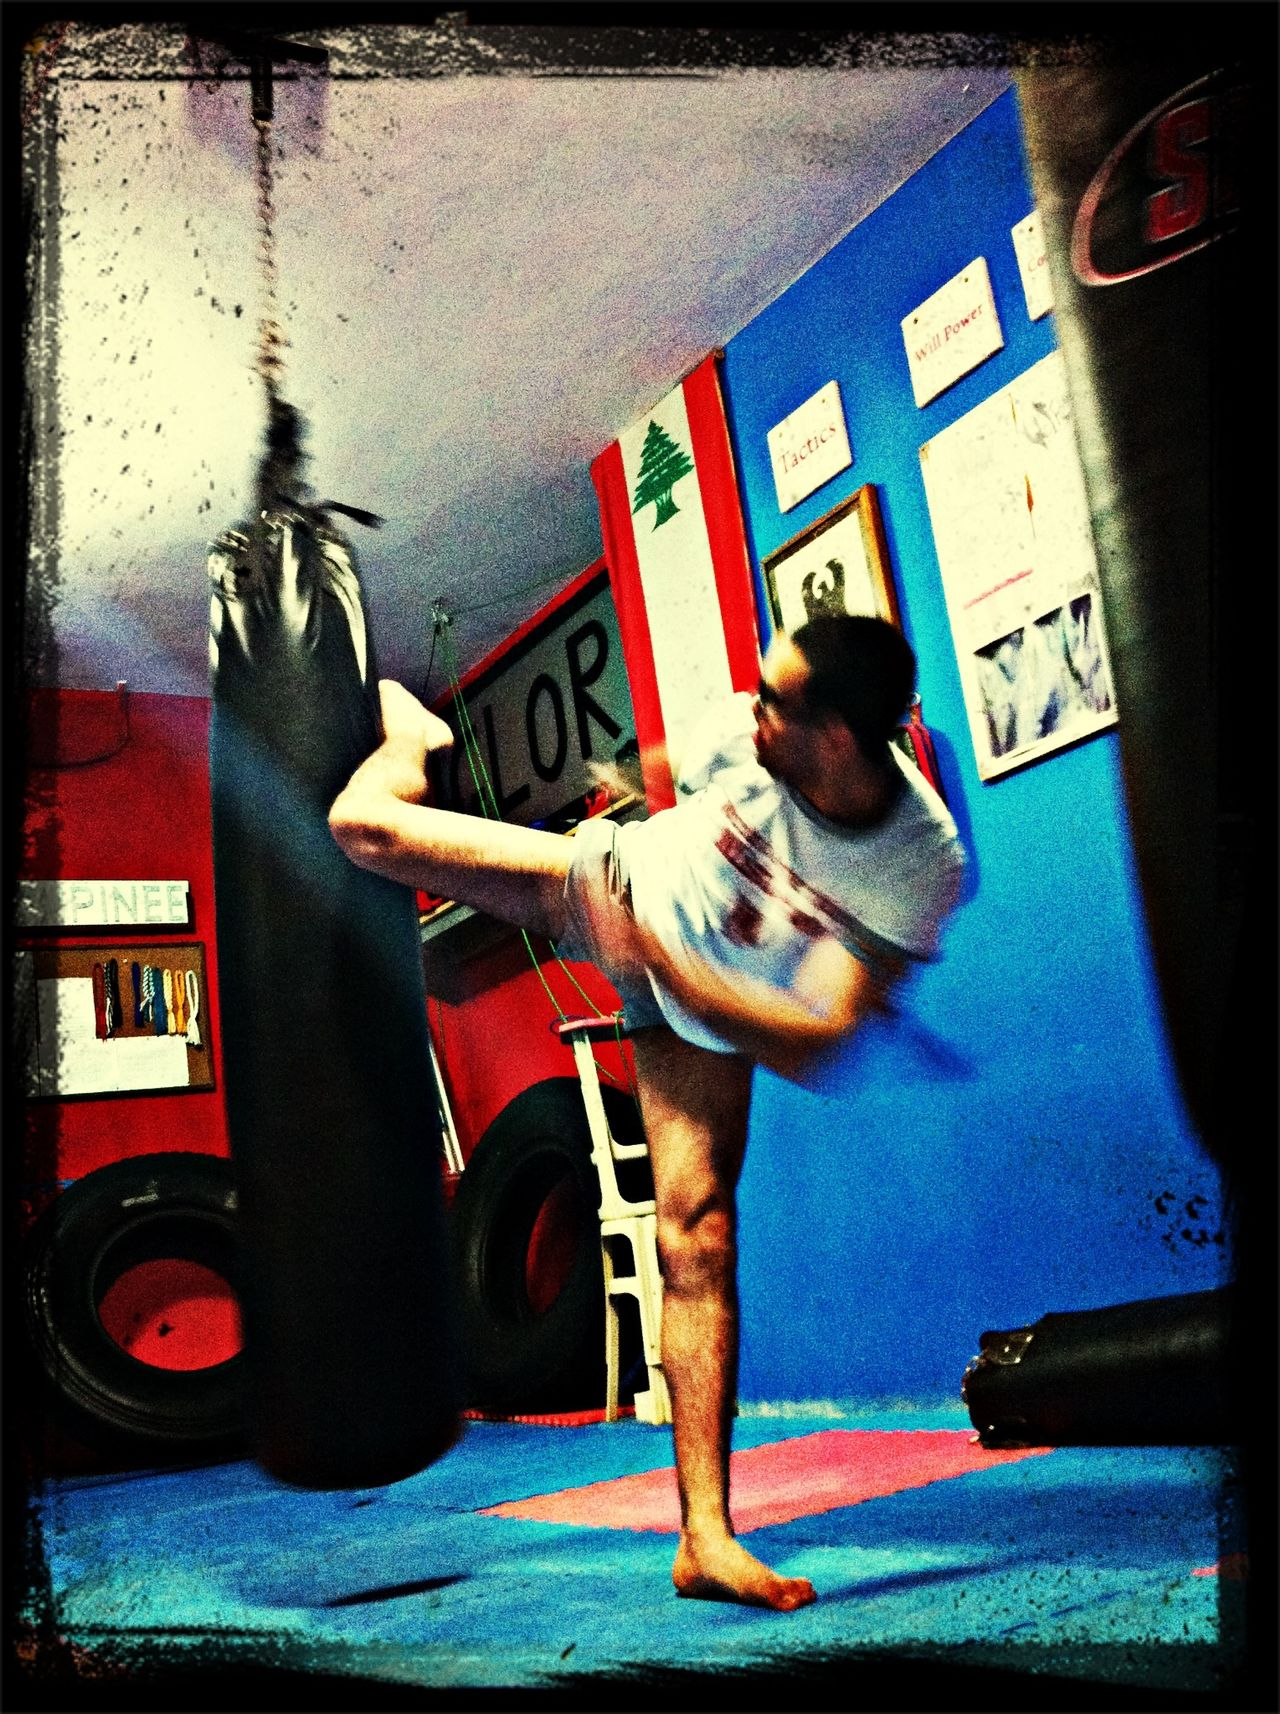 Brother Muay Thai Round Kick Near And Far